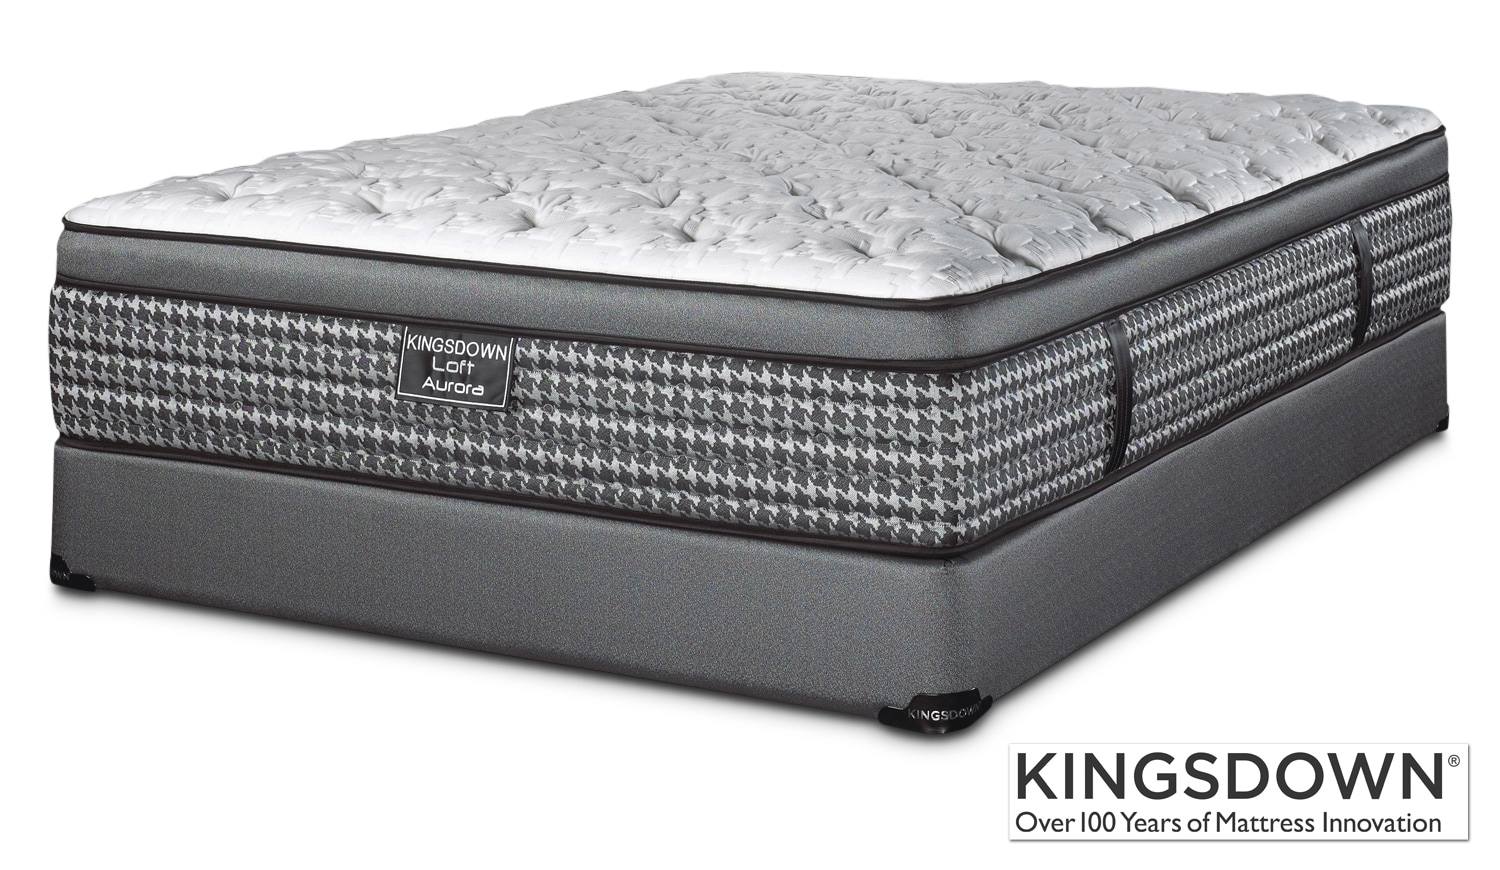 Kingsdown Aurora Queen Mattress/Boxspring Set